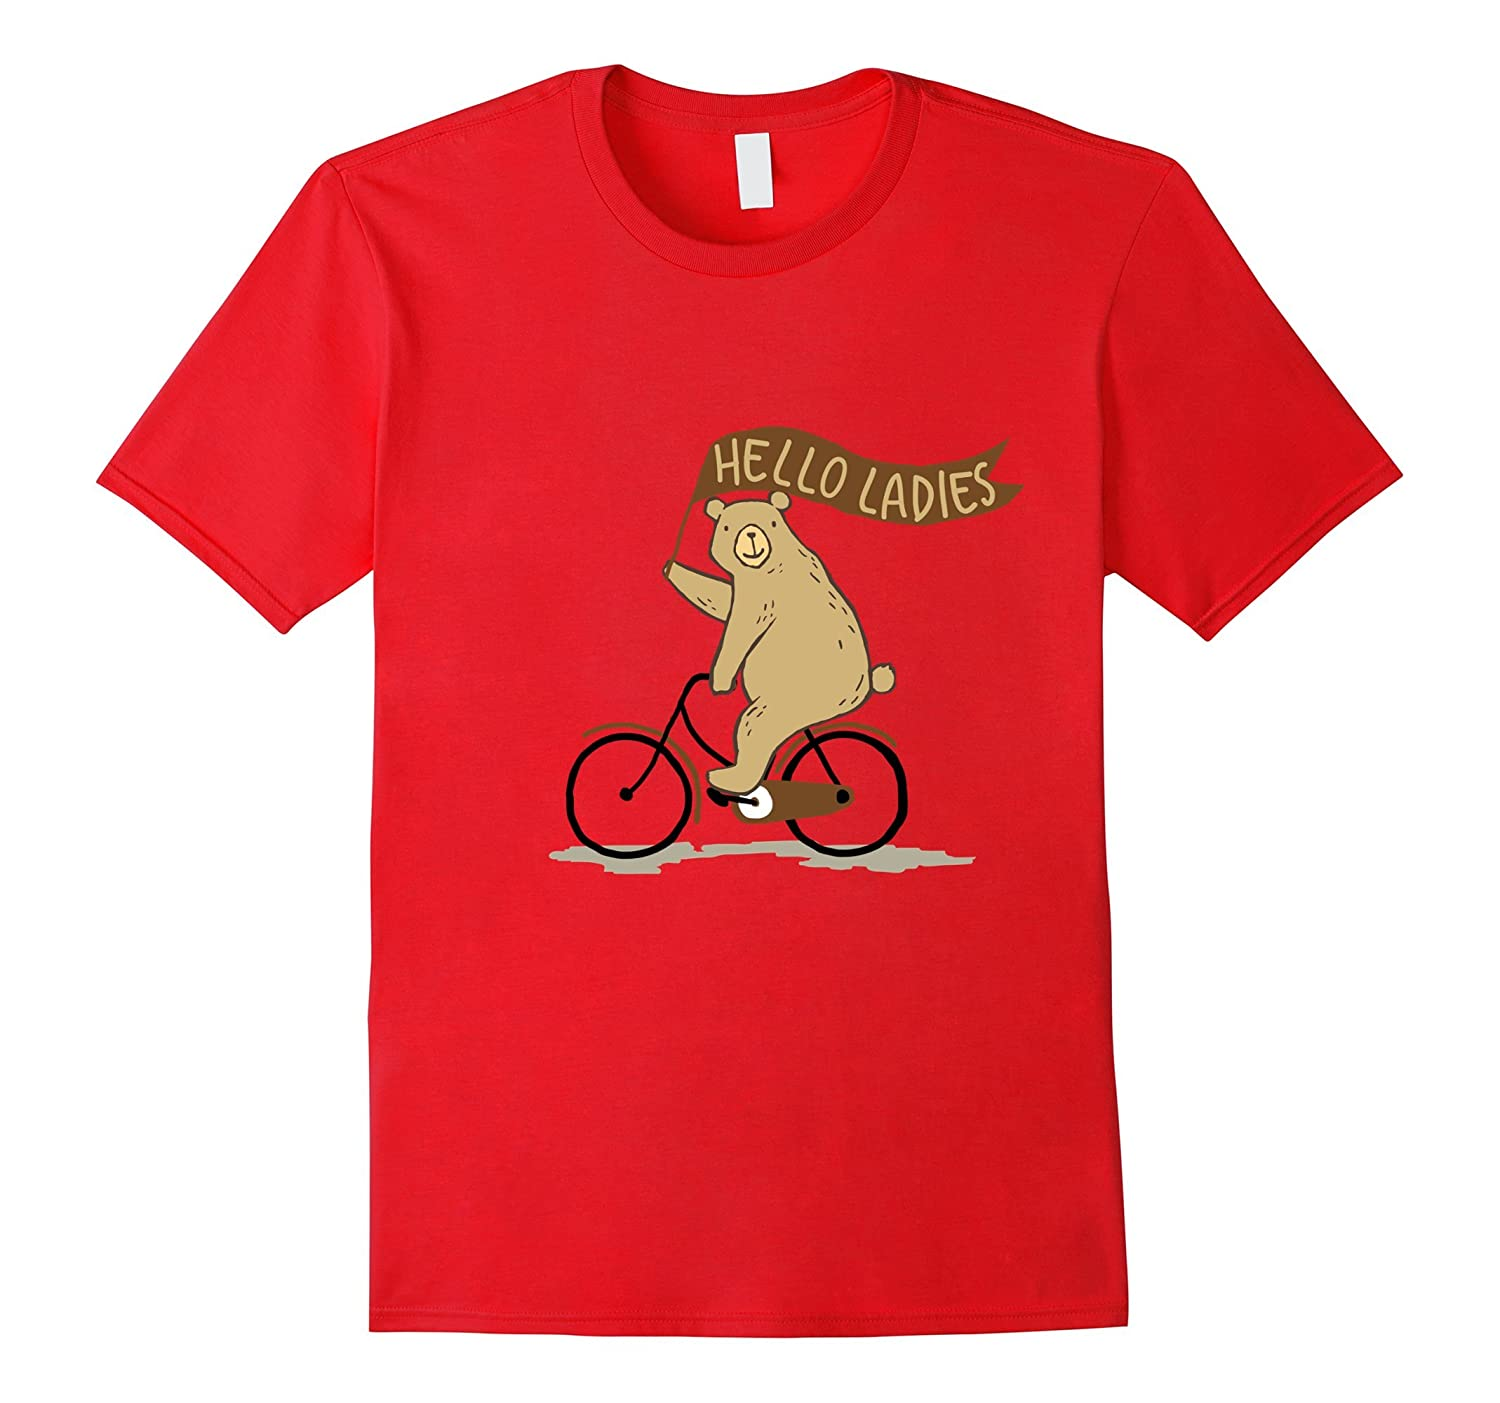 Bear on a bike T-Shirt Hey ladies funny banner riding tee-FL